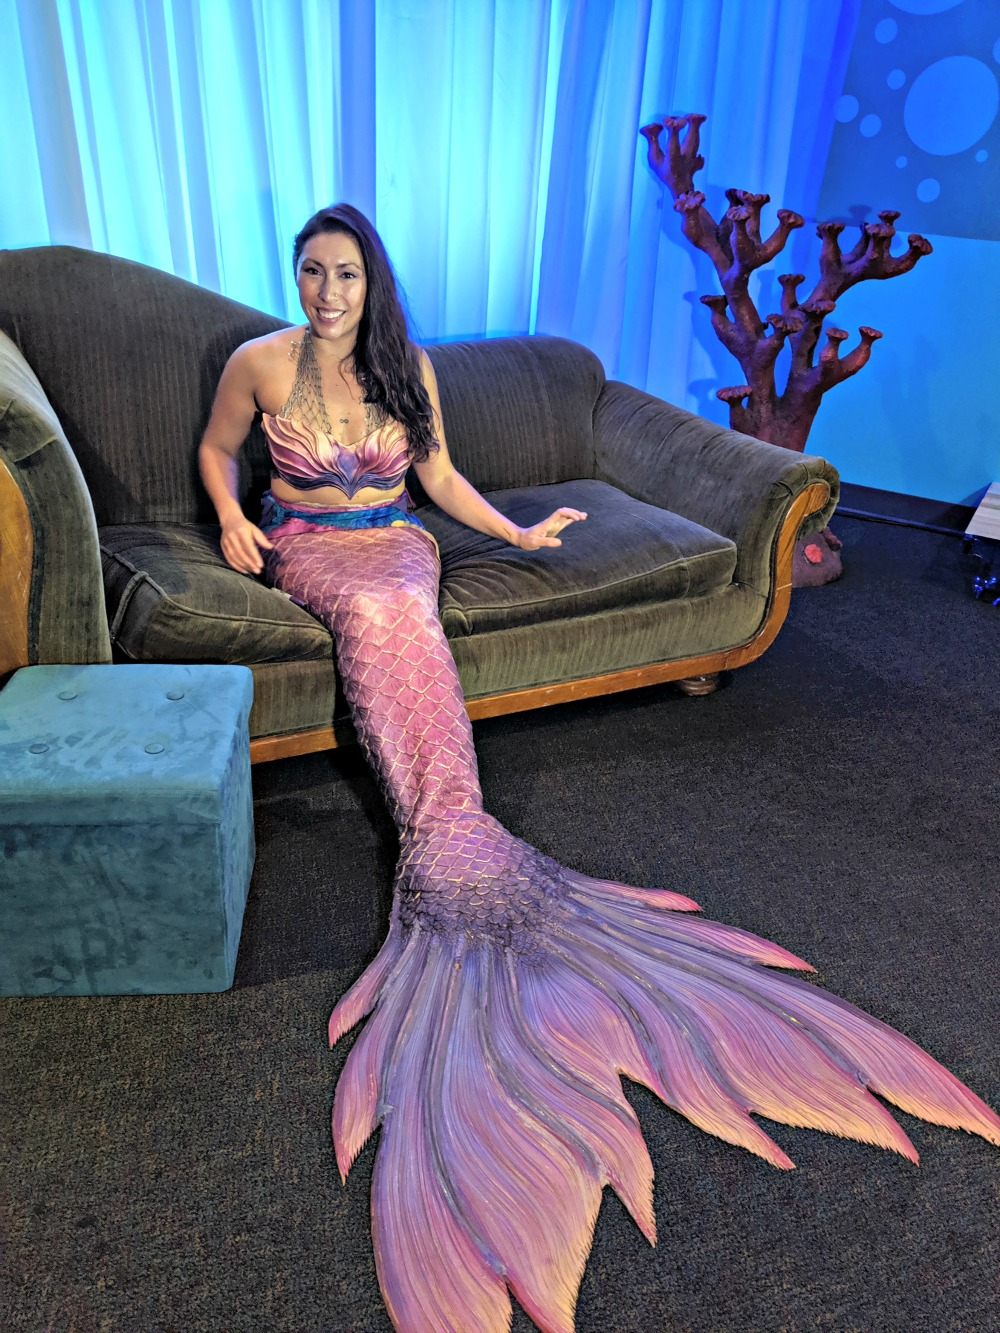 SEA LIFE GRAPEVINE Mermaid Experience Photo Opportunity